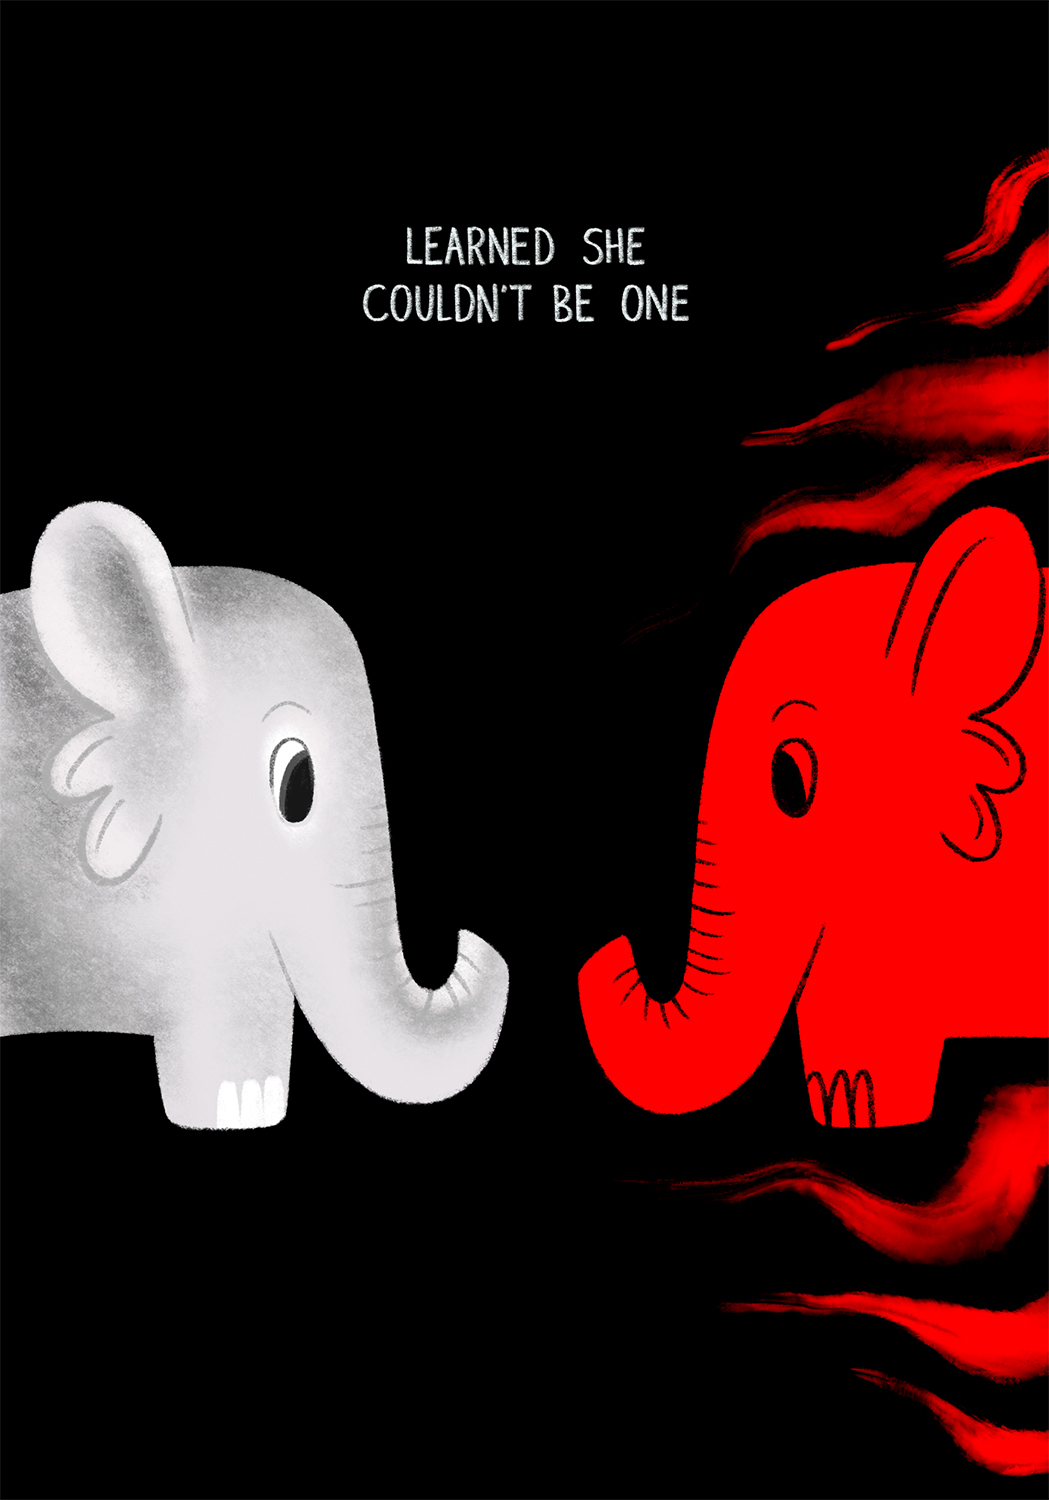 Against a black background, the gray elephant and the red, paint smeared elephant face and stare at each other like a mirror.